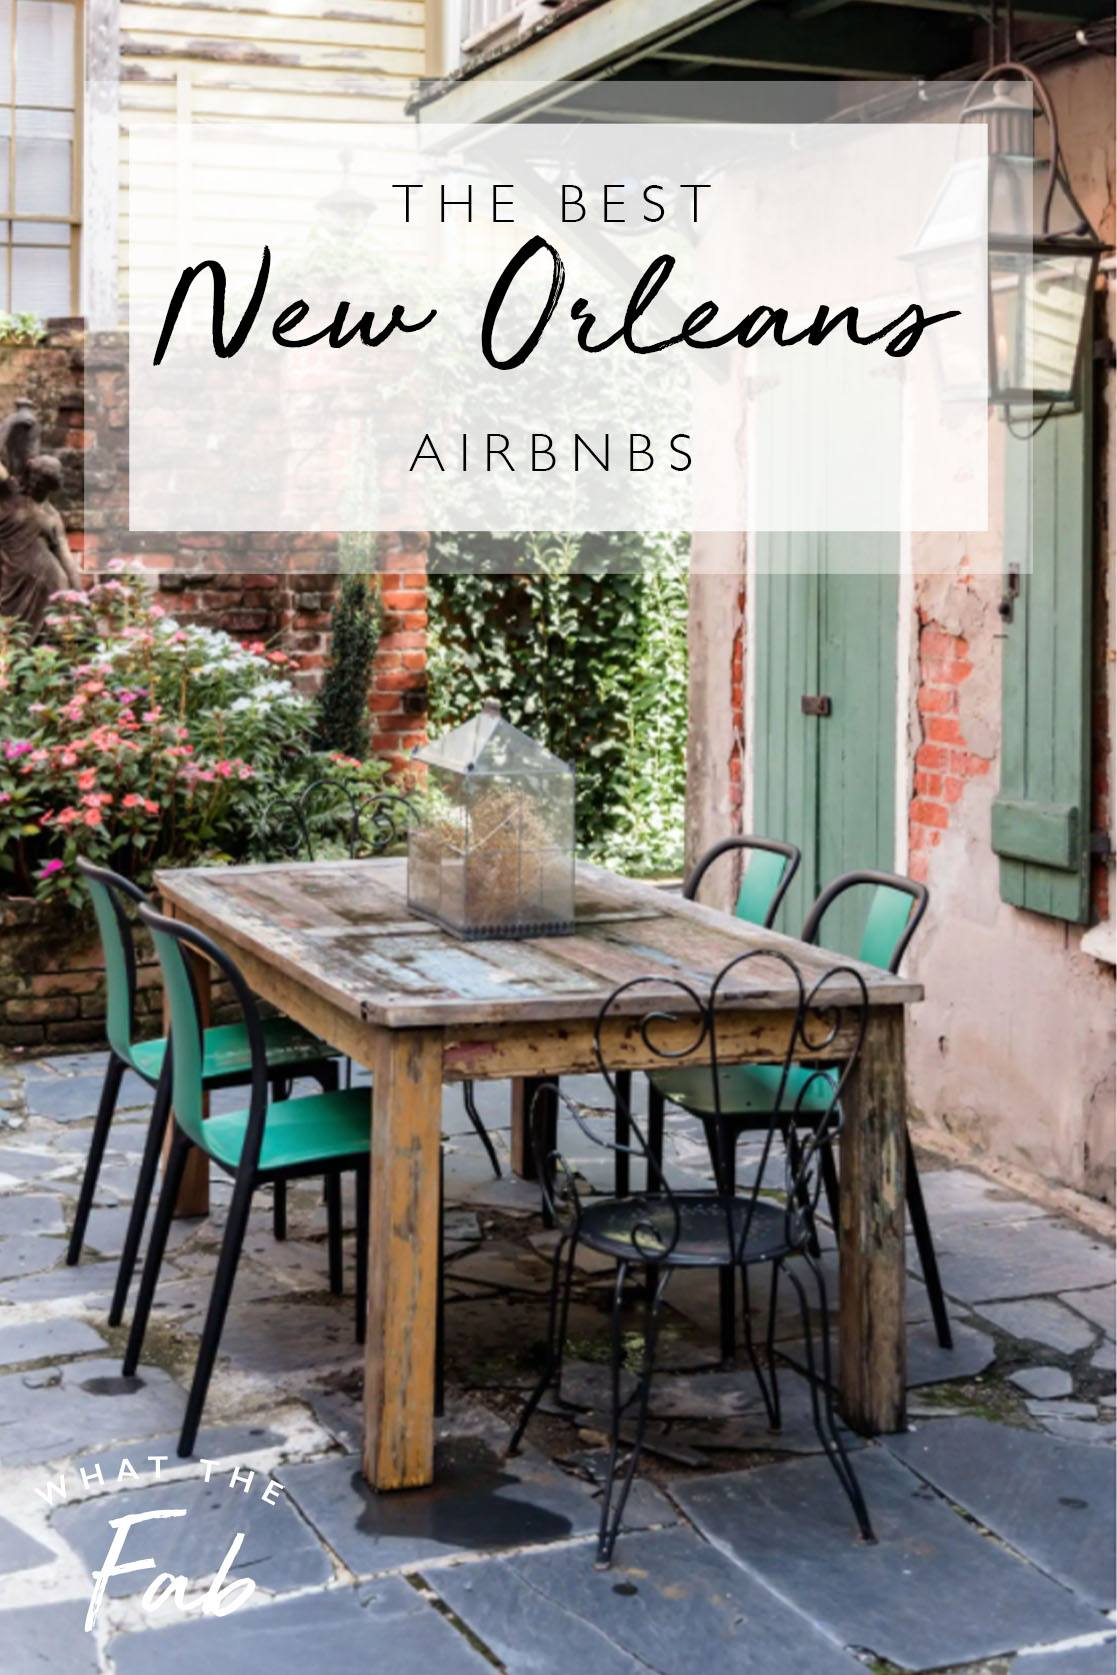 New Orleans Airbnbs, by Travel Blogger What The Fab